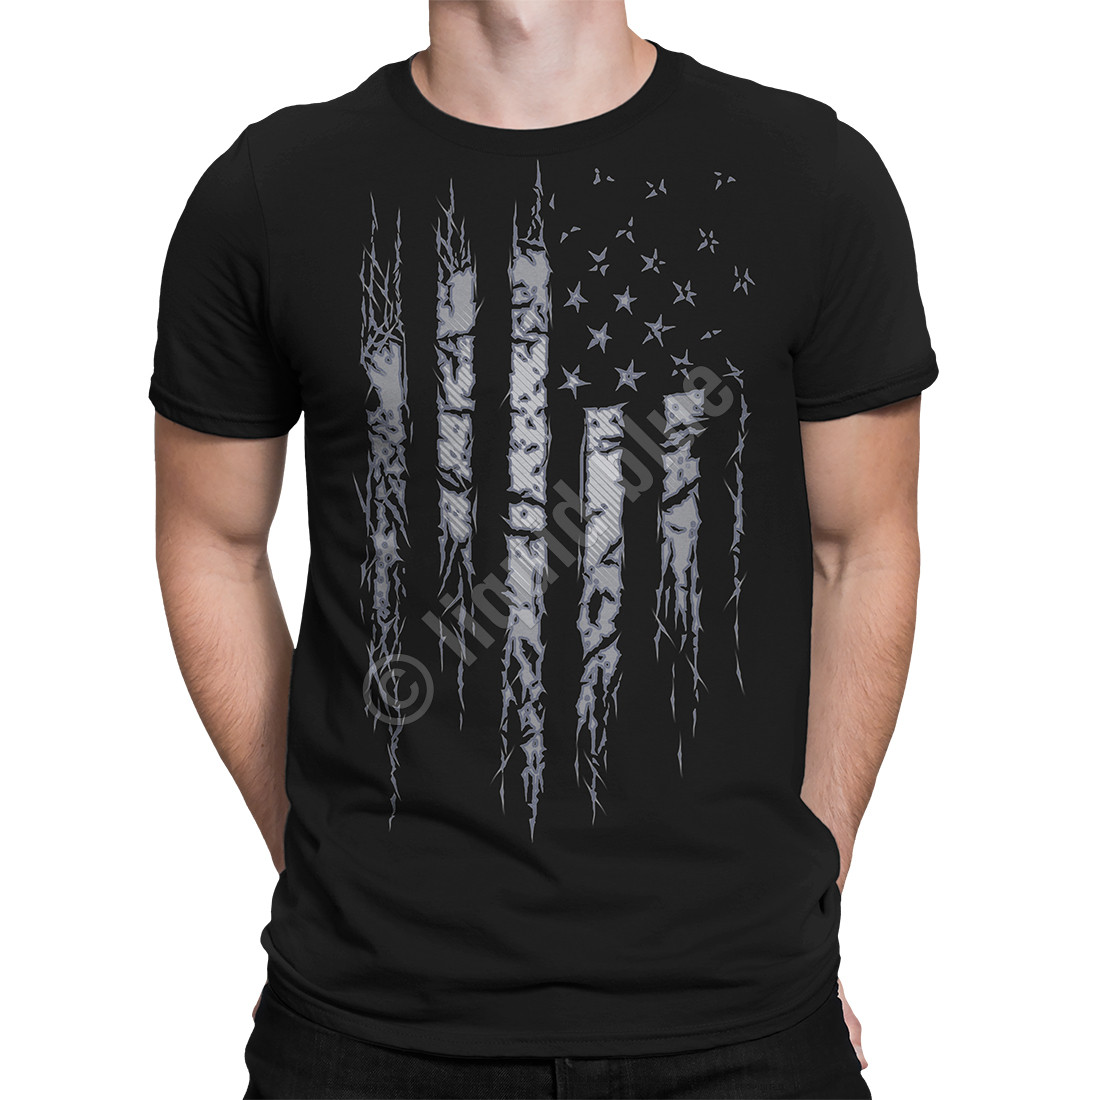 Tattered and Torn Black T-Shirt